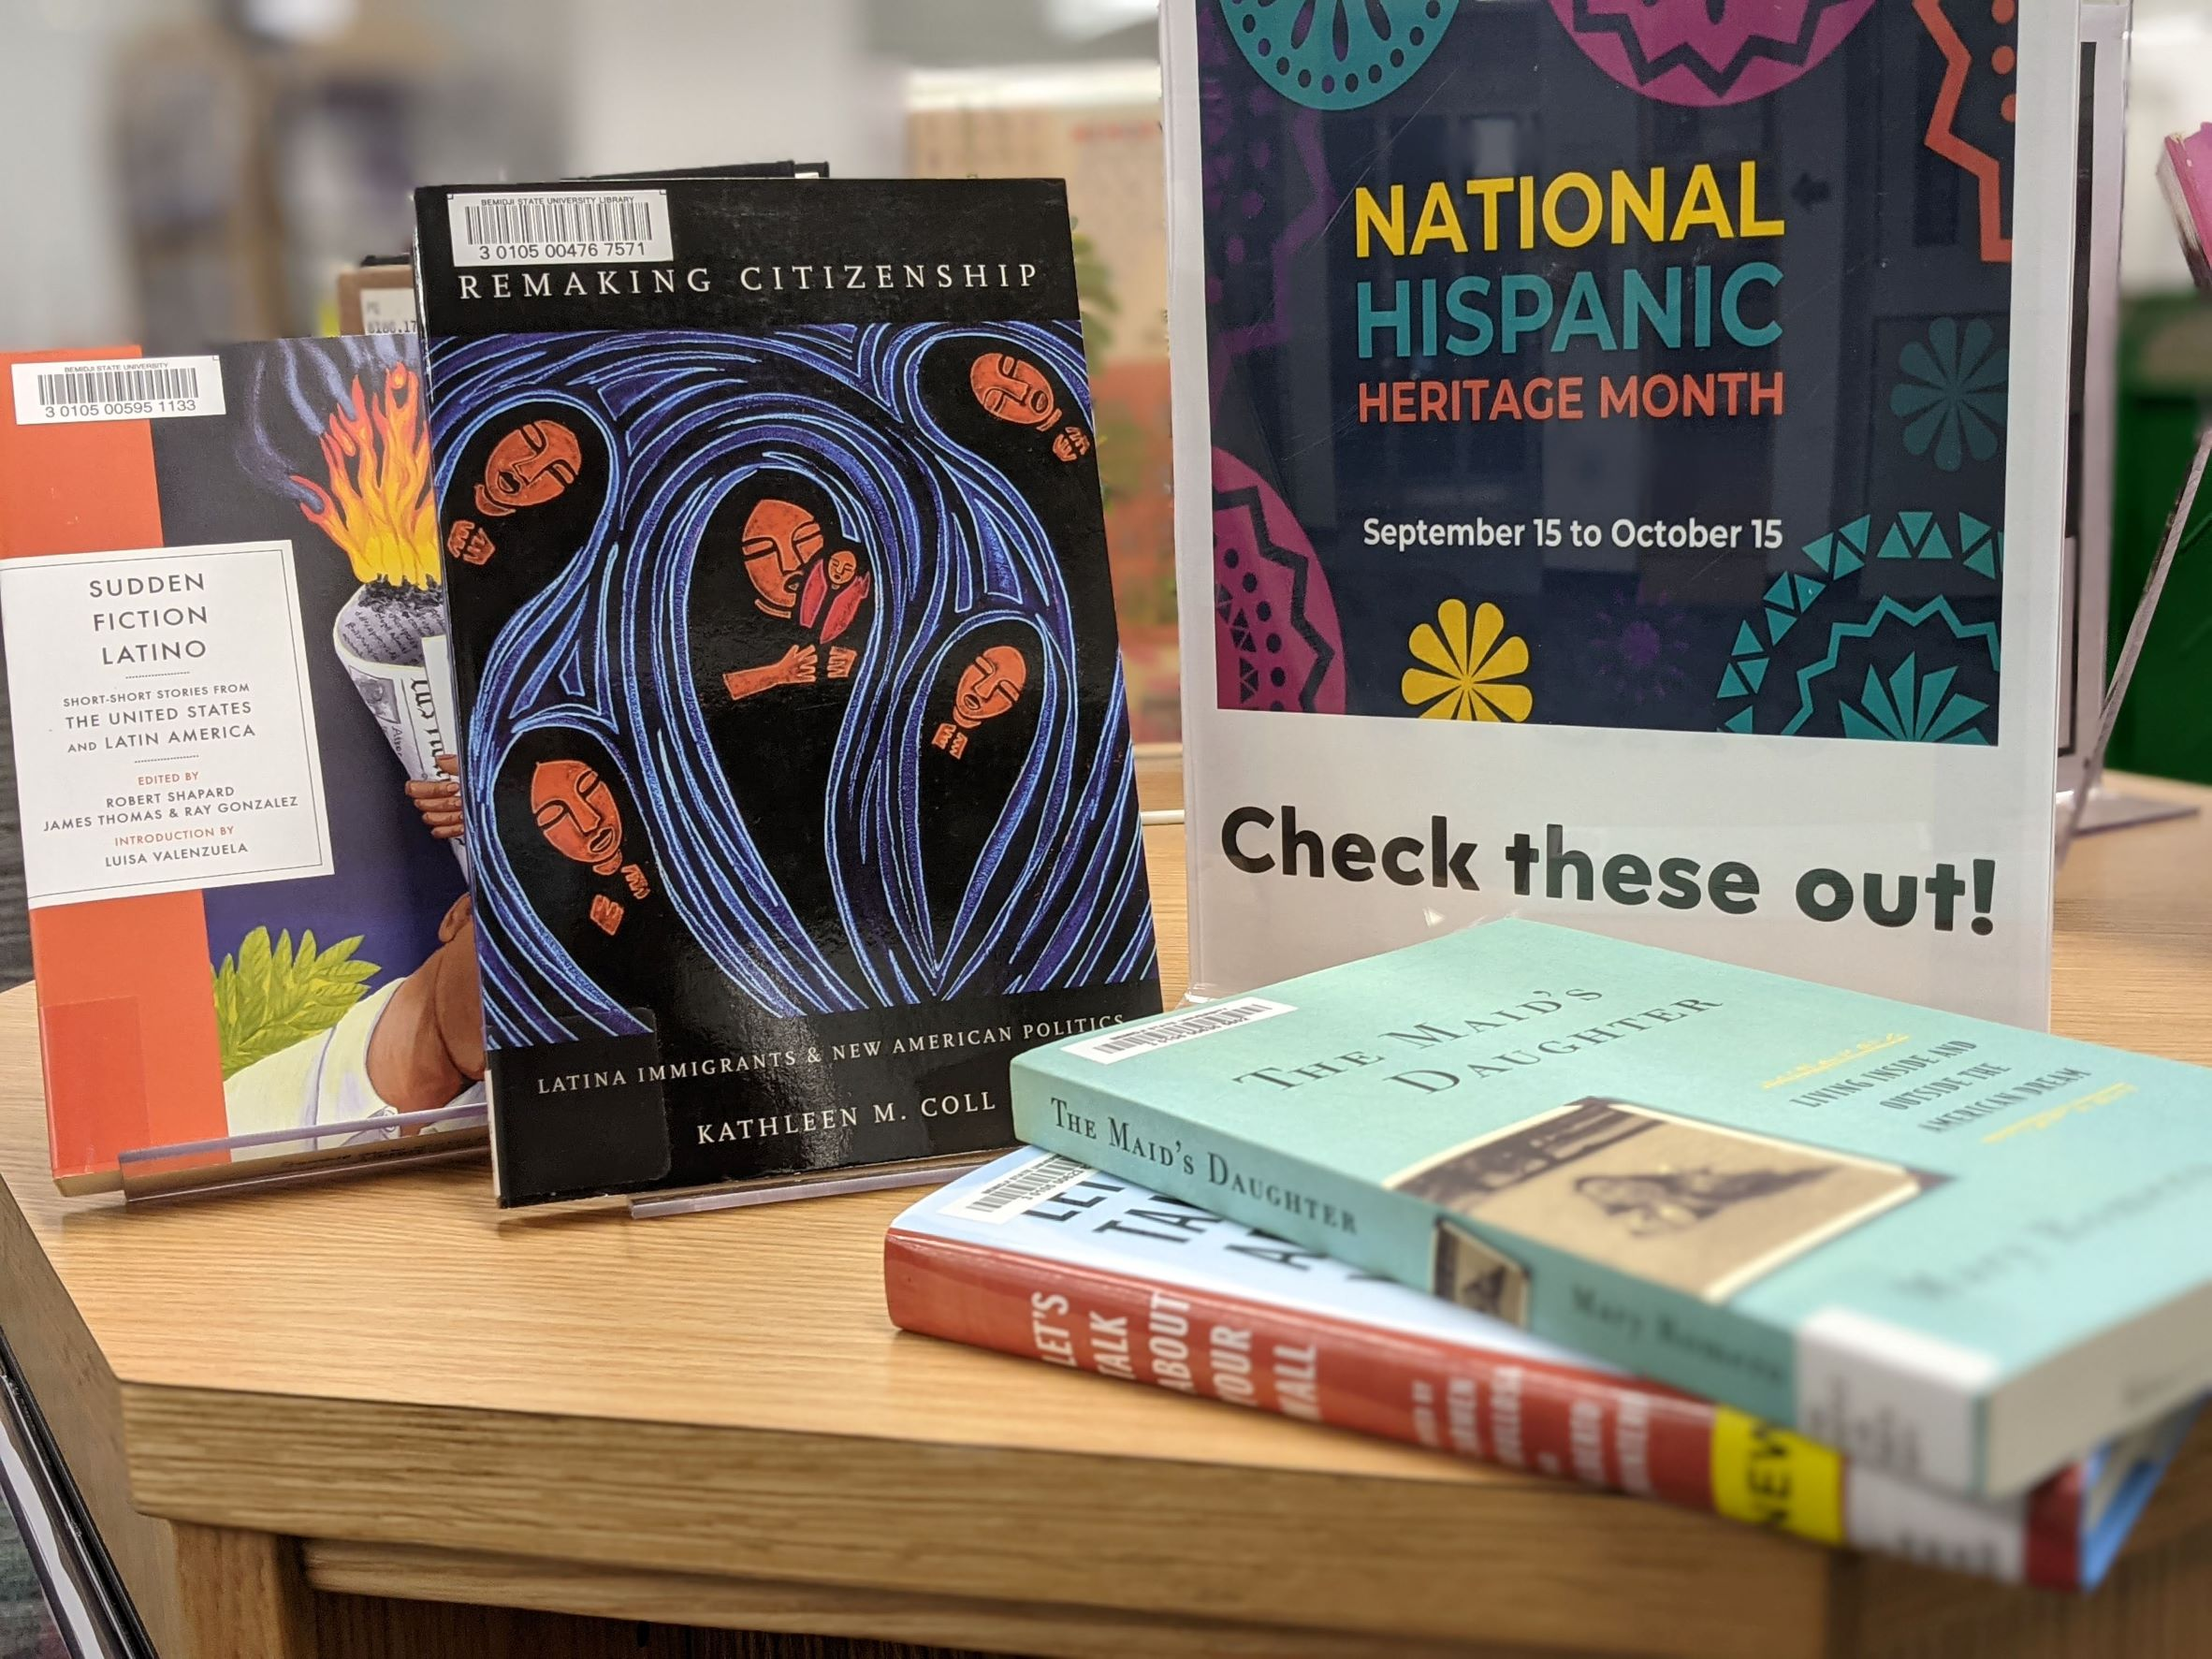 National Historical Heritage Month book display